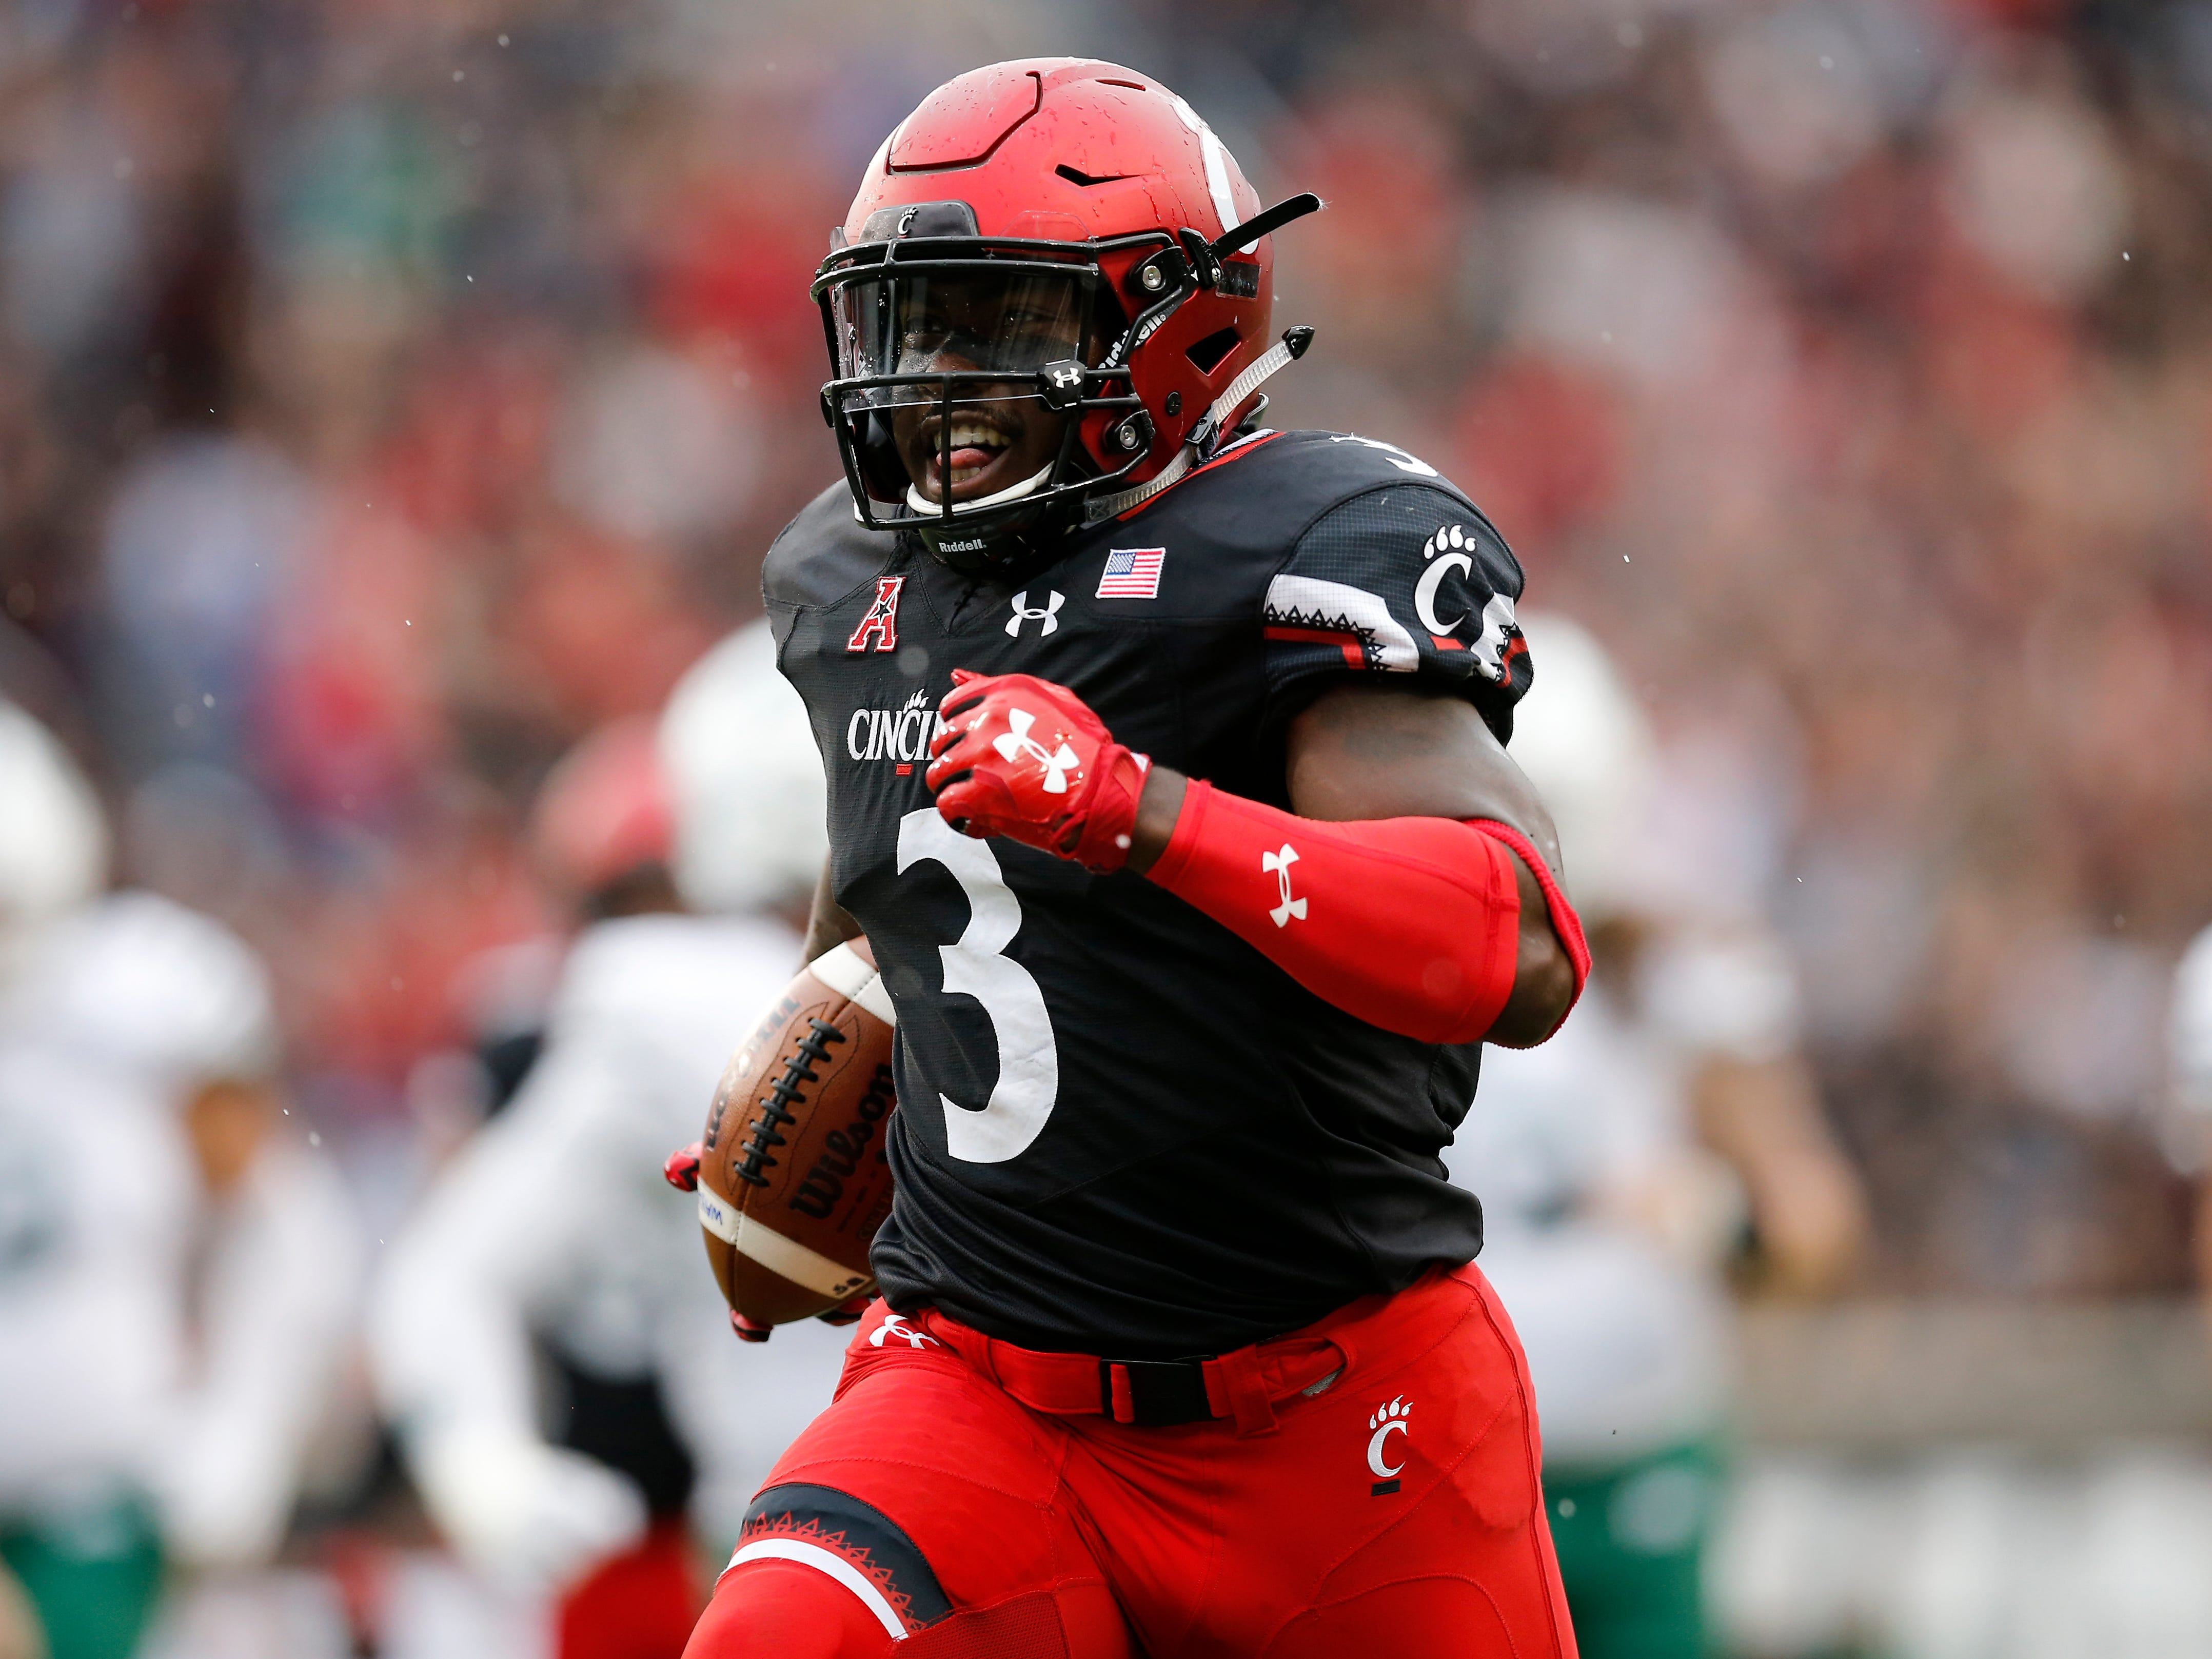 Cincinnati Bearcats running back Michael Warren II (3) runs the ball in for a touchdown in the second quarter of the NCAA football game between the Cincinnati Bearcats and the Ohio Bobcats at Nippert Stadium on the University of Cincinnati campus in Cincinnati on Saturday, Sept. 22, 2018. The Bobcats led 24-7 at halftime.